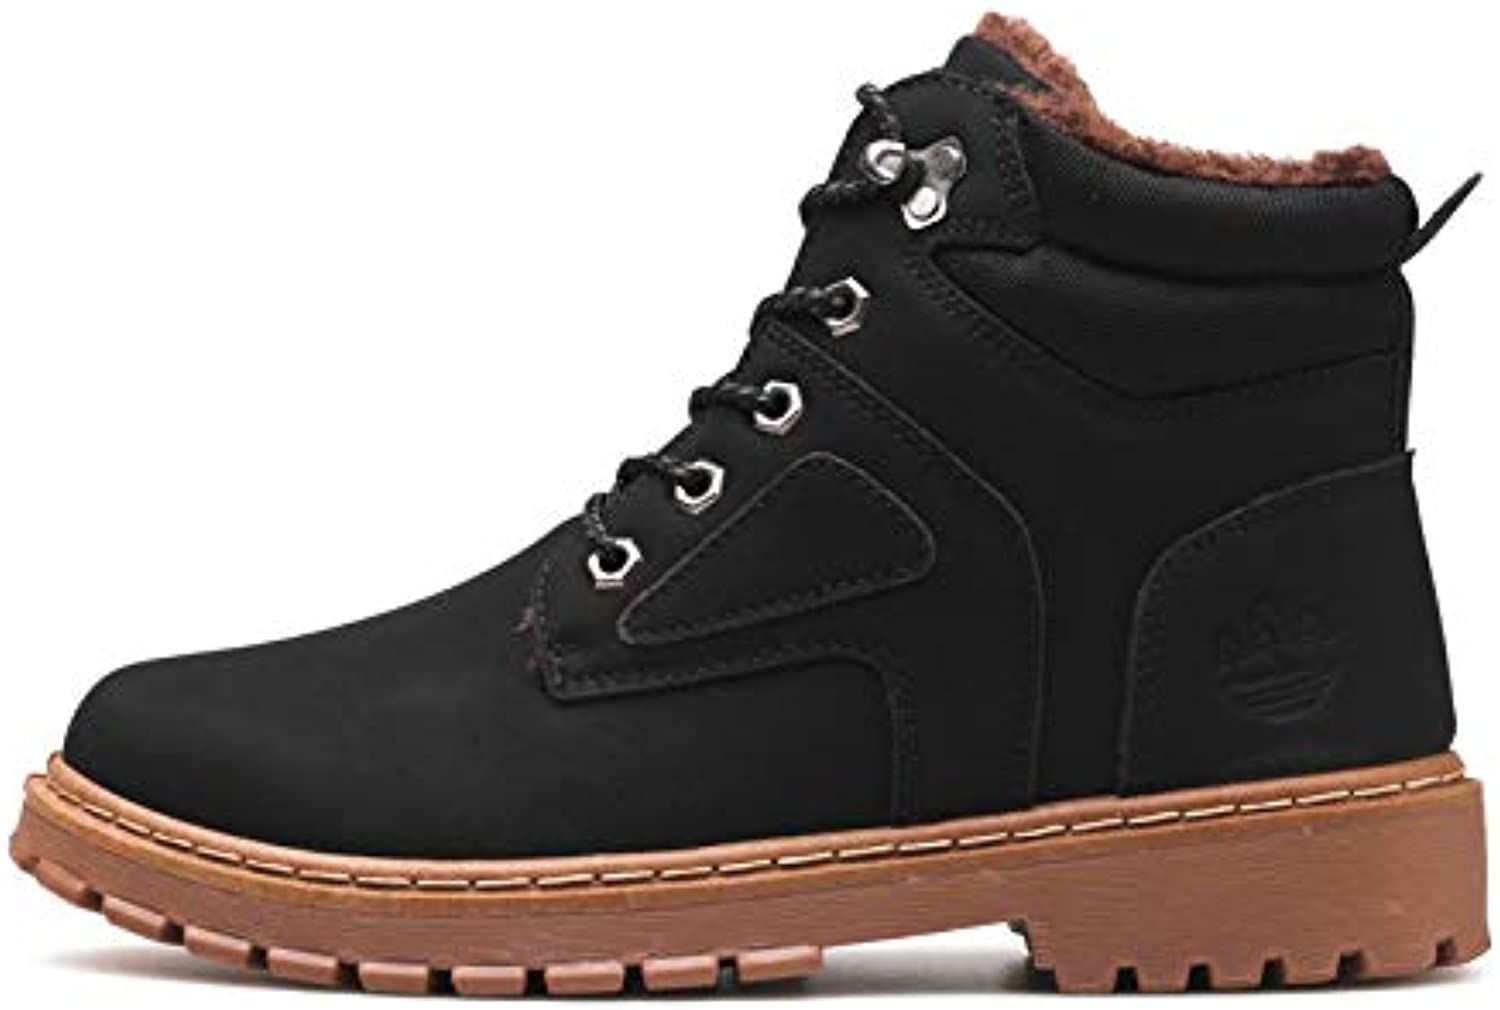 Shoes LOVDRAM Boots Mens Thicken Tooling Shoes MenS Shoes Winter Martin Boots Warm Autumn New MenS Casual Shoes Fashion Shoes & Bags